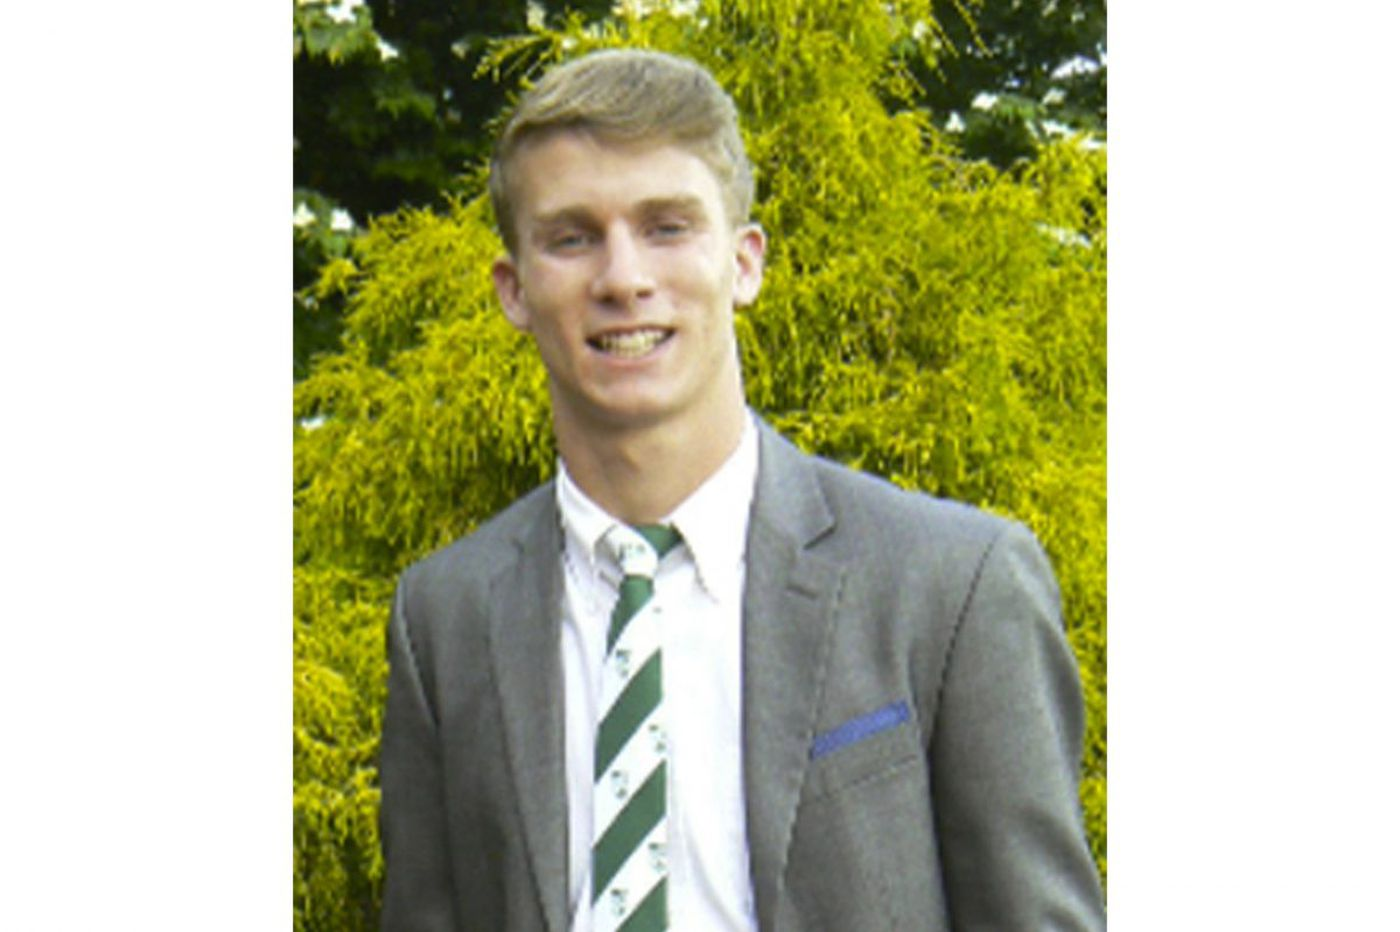 Autopsy: St. Joe's rugby player died from fall in Bermuda, no foul play suspected